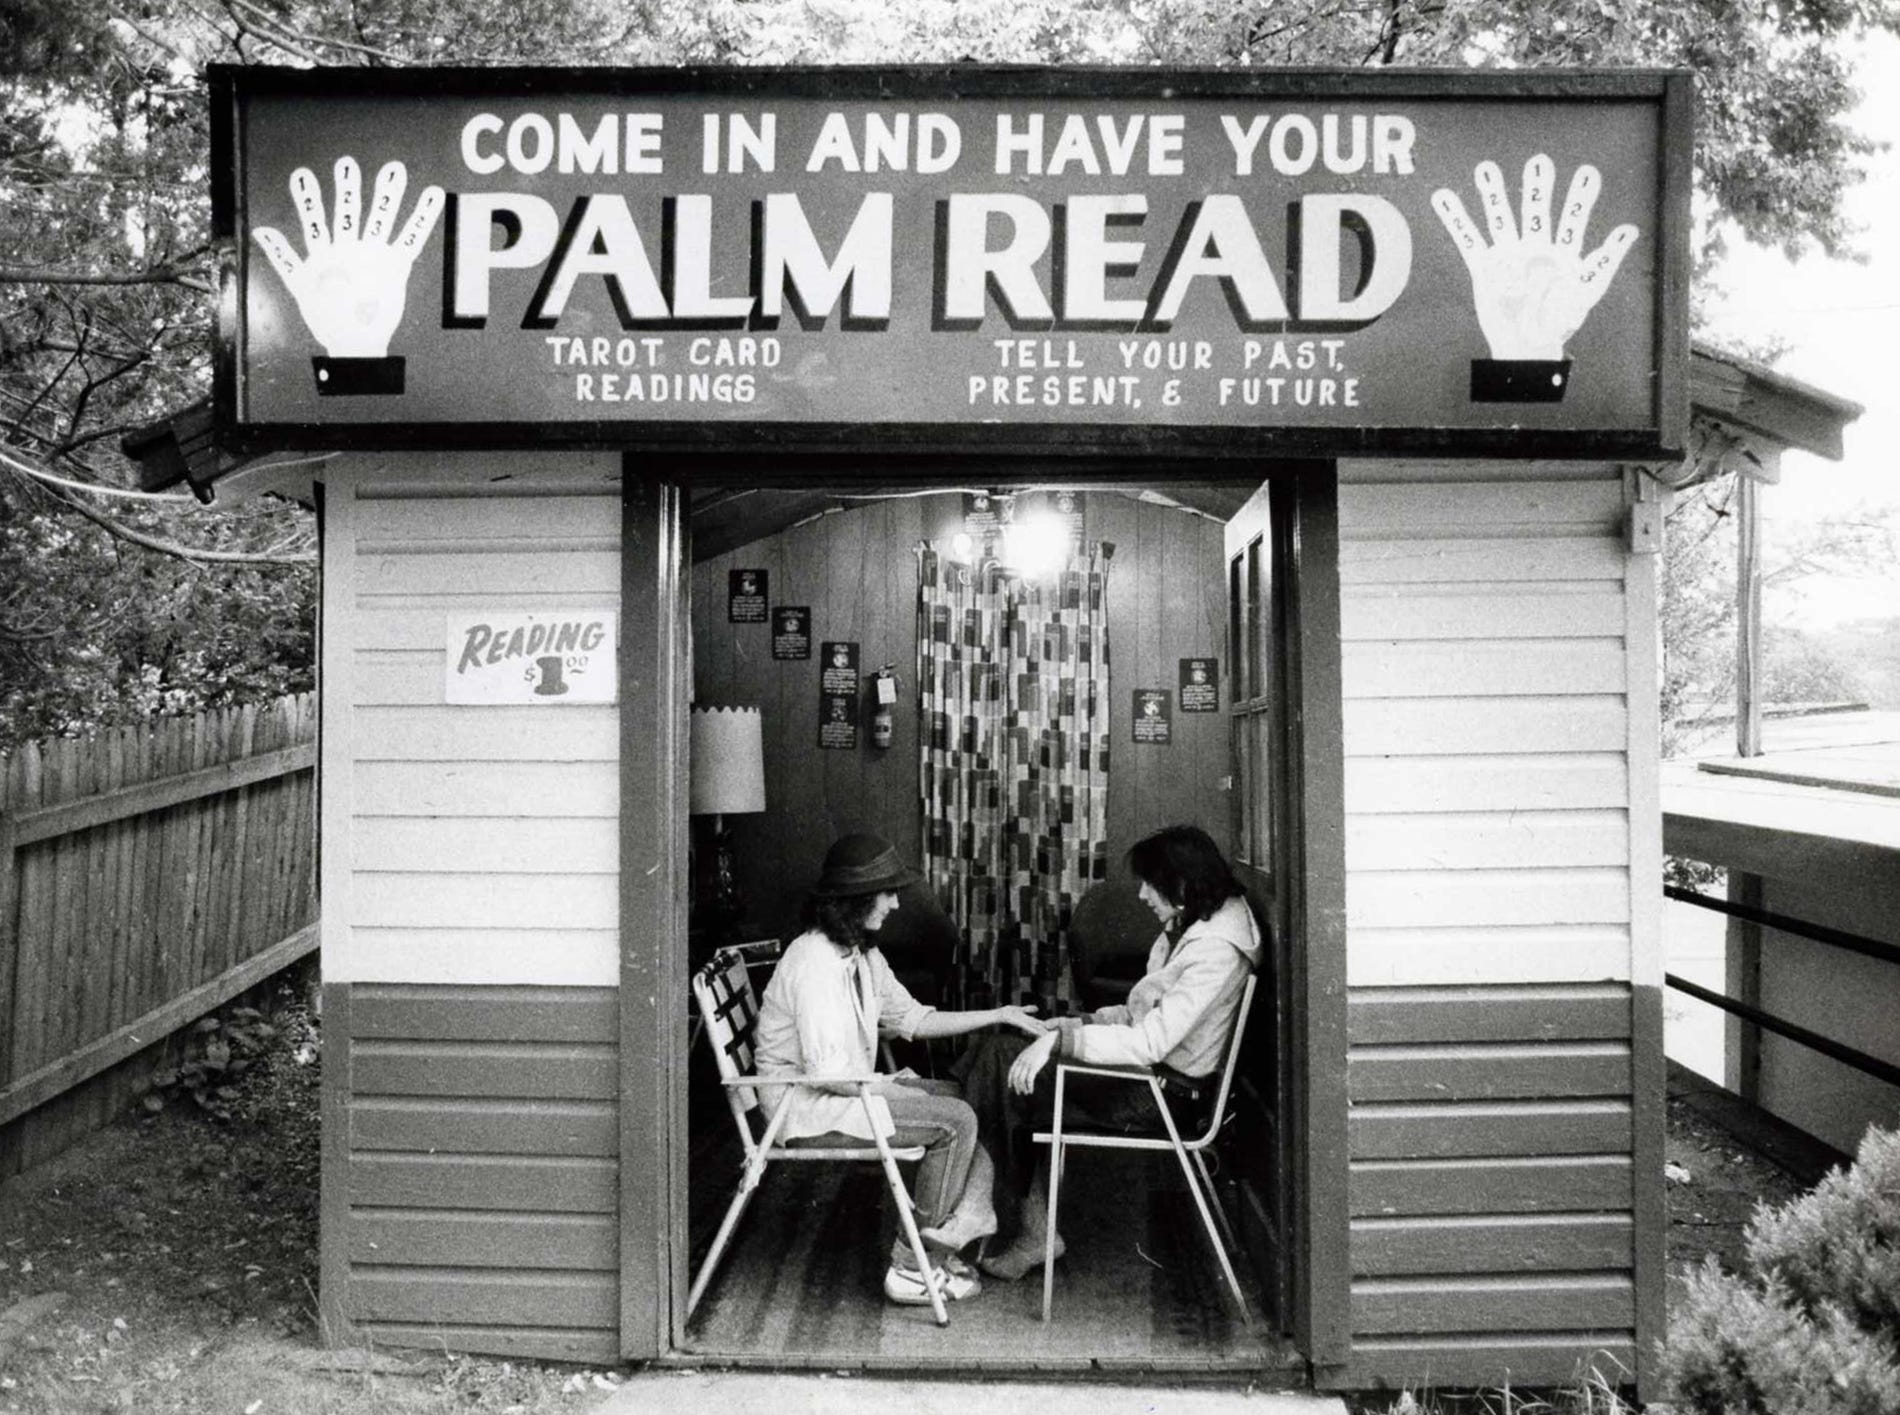 Bertrand Island Amusement Park - Lake Hopatcong 5/22/82 Shirley Kaslov reading palms at her stand.